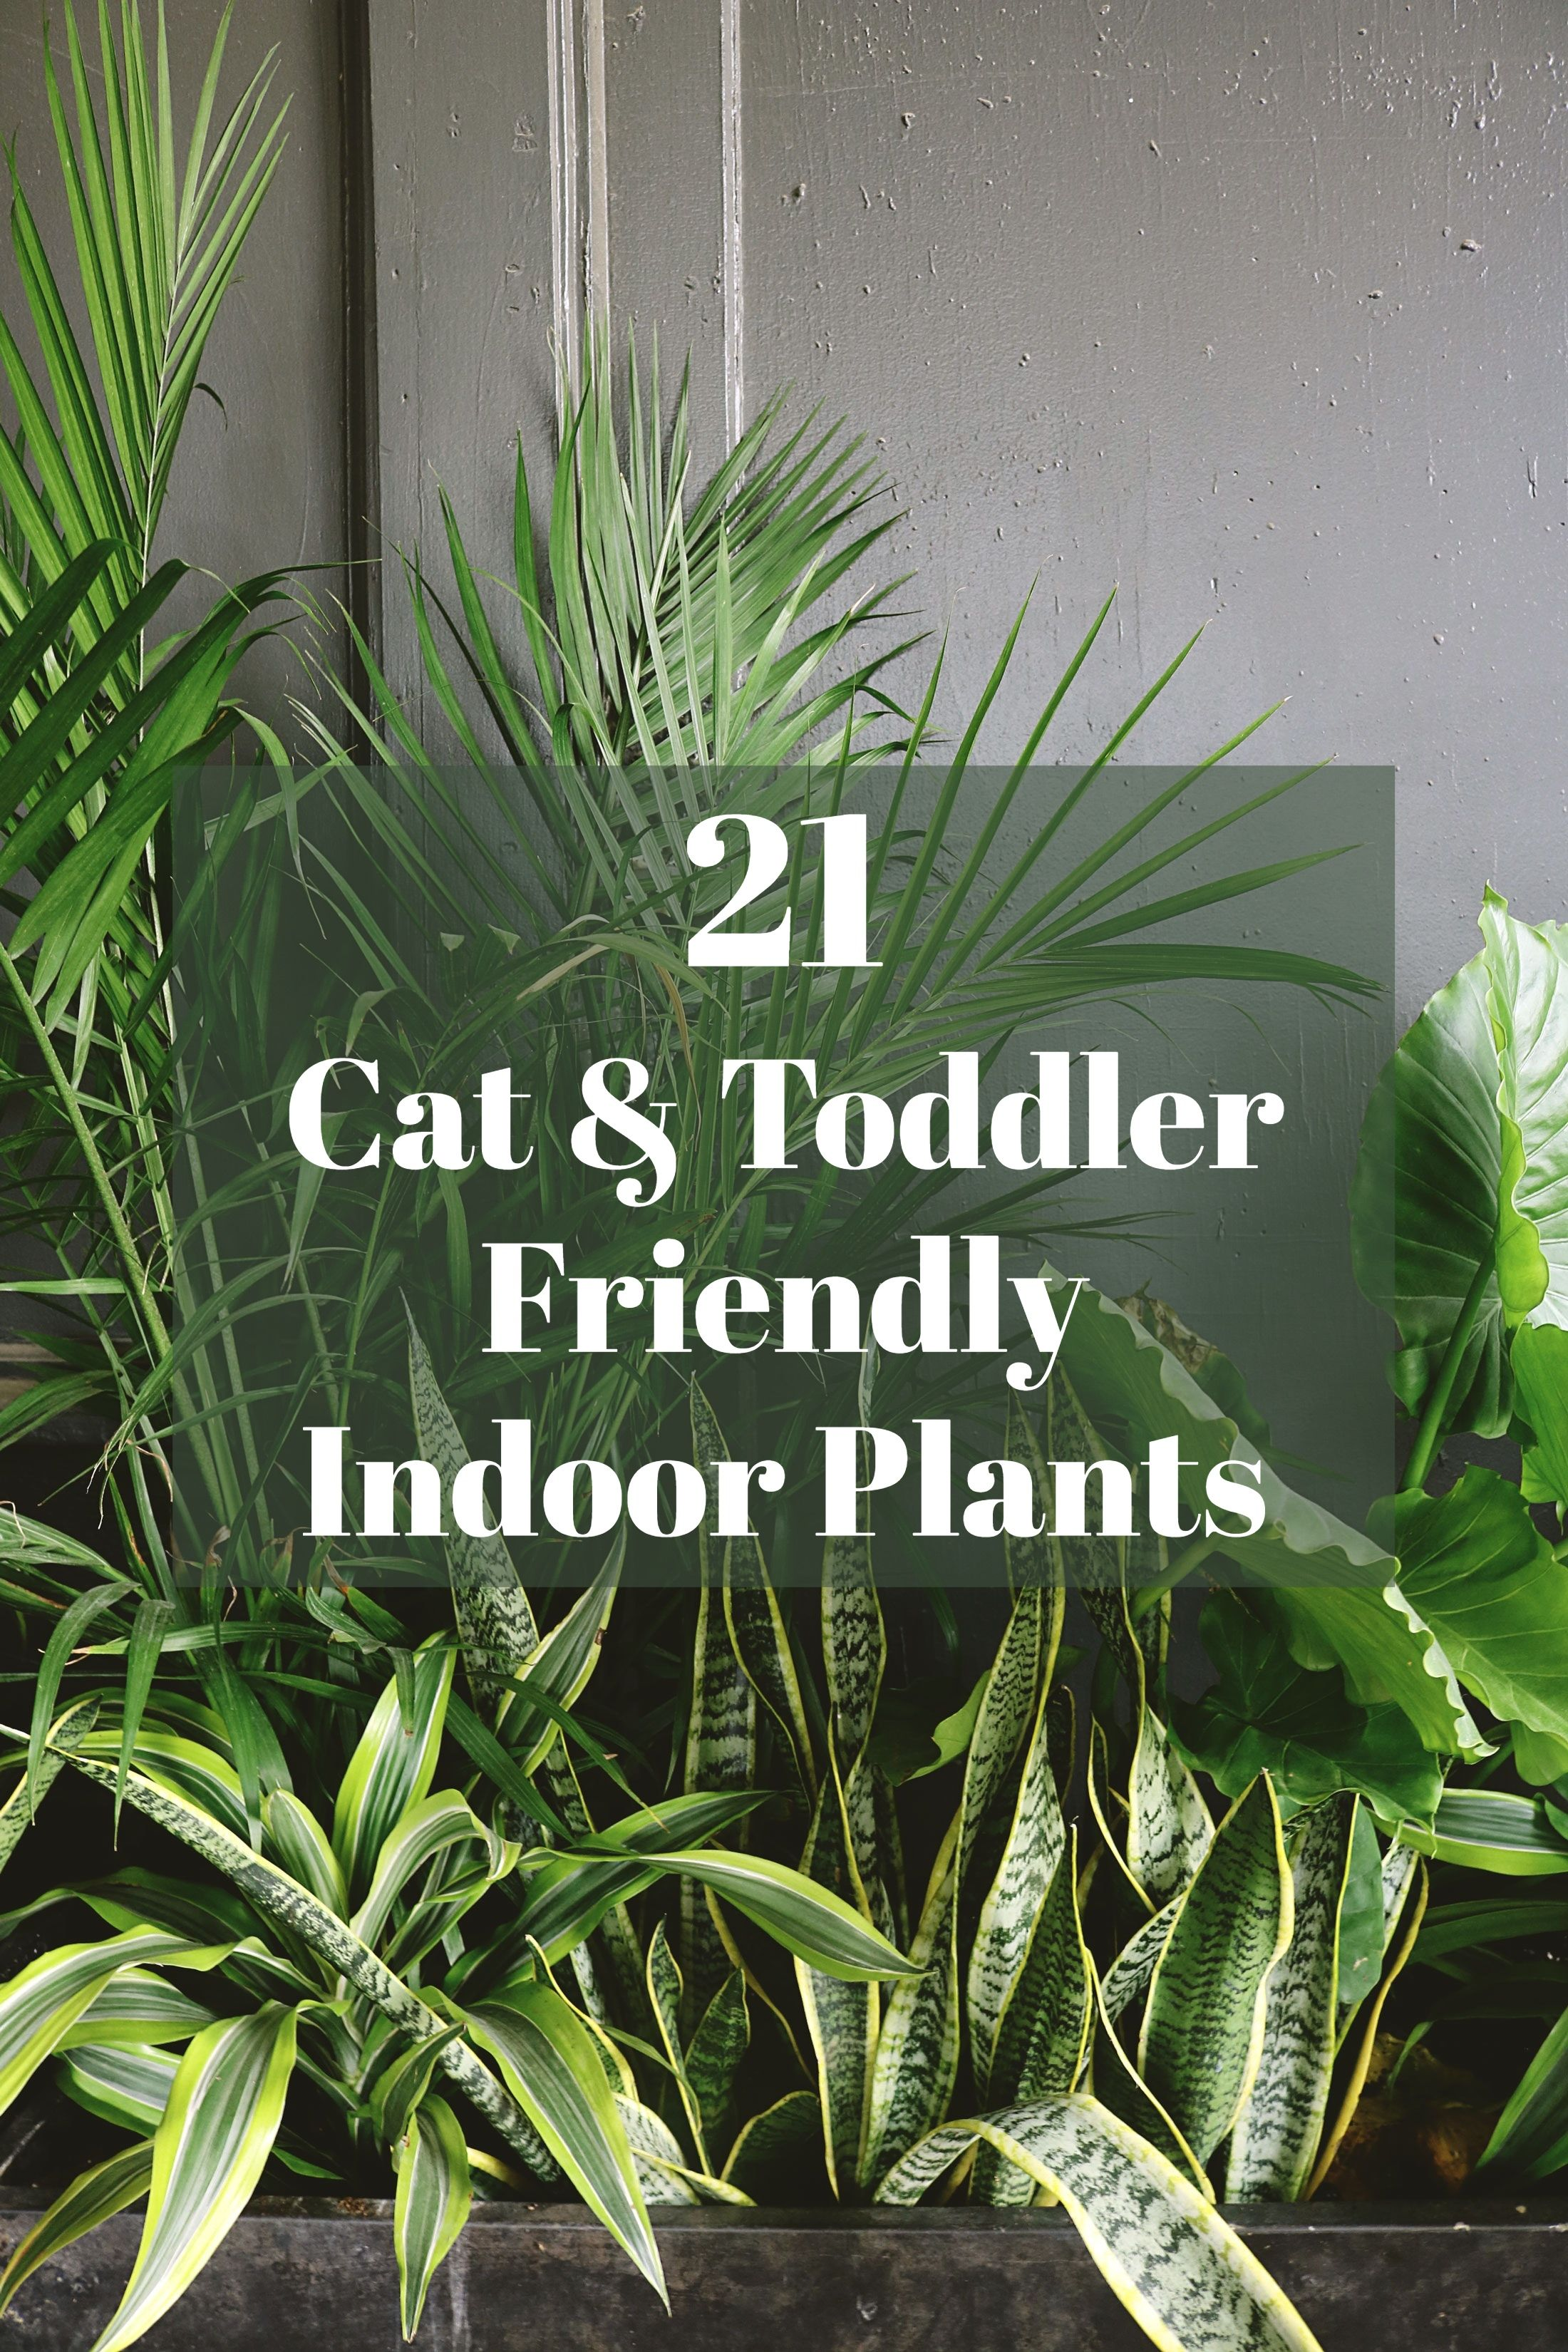 21 Cat Toddler Friendly Indoor Plants Raising You Maintaining Me Indoor Plants Pet Friendly Cat Safe Plants Safe House Plants